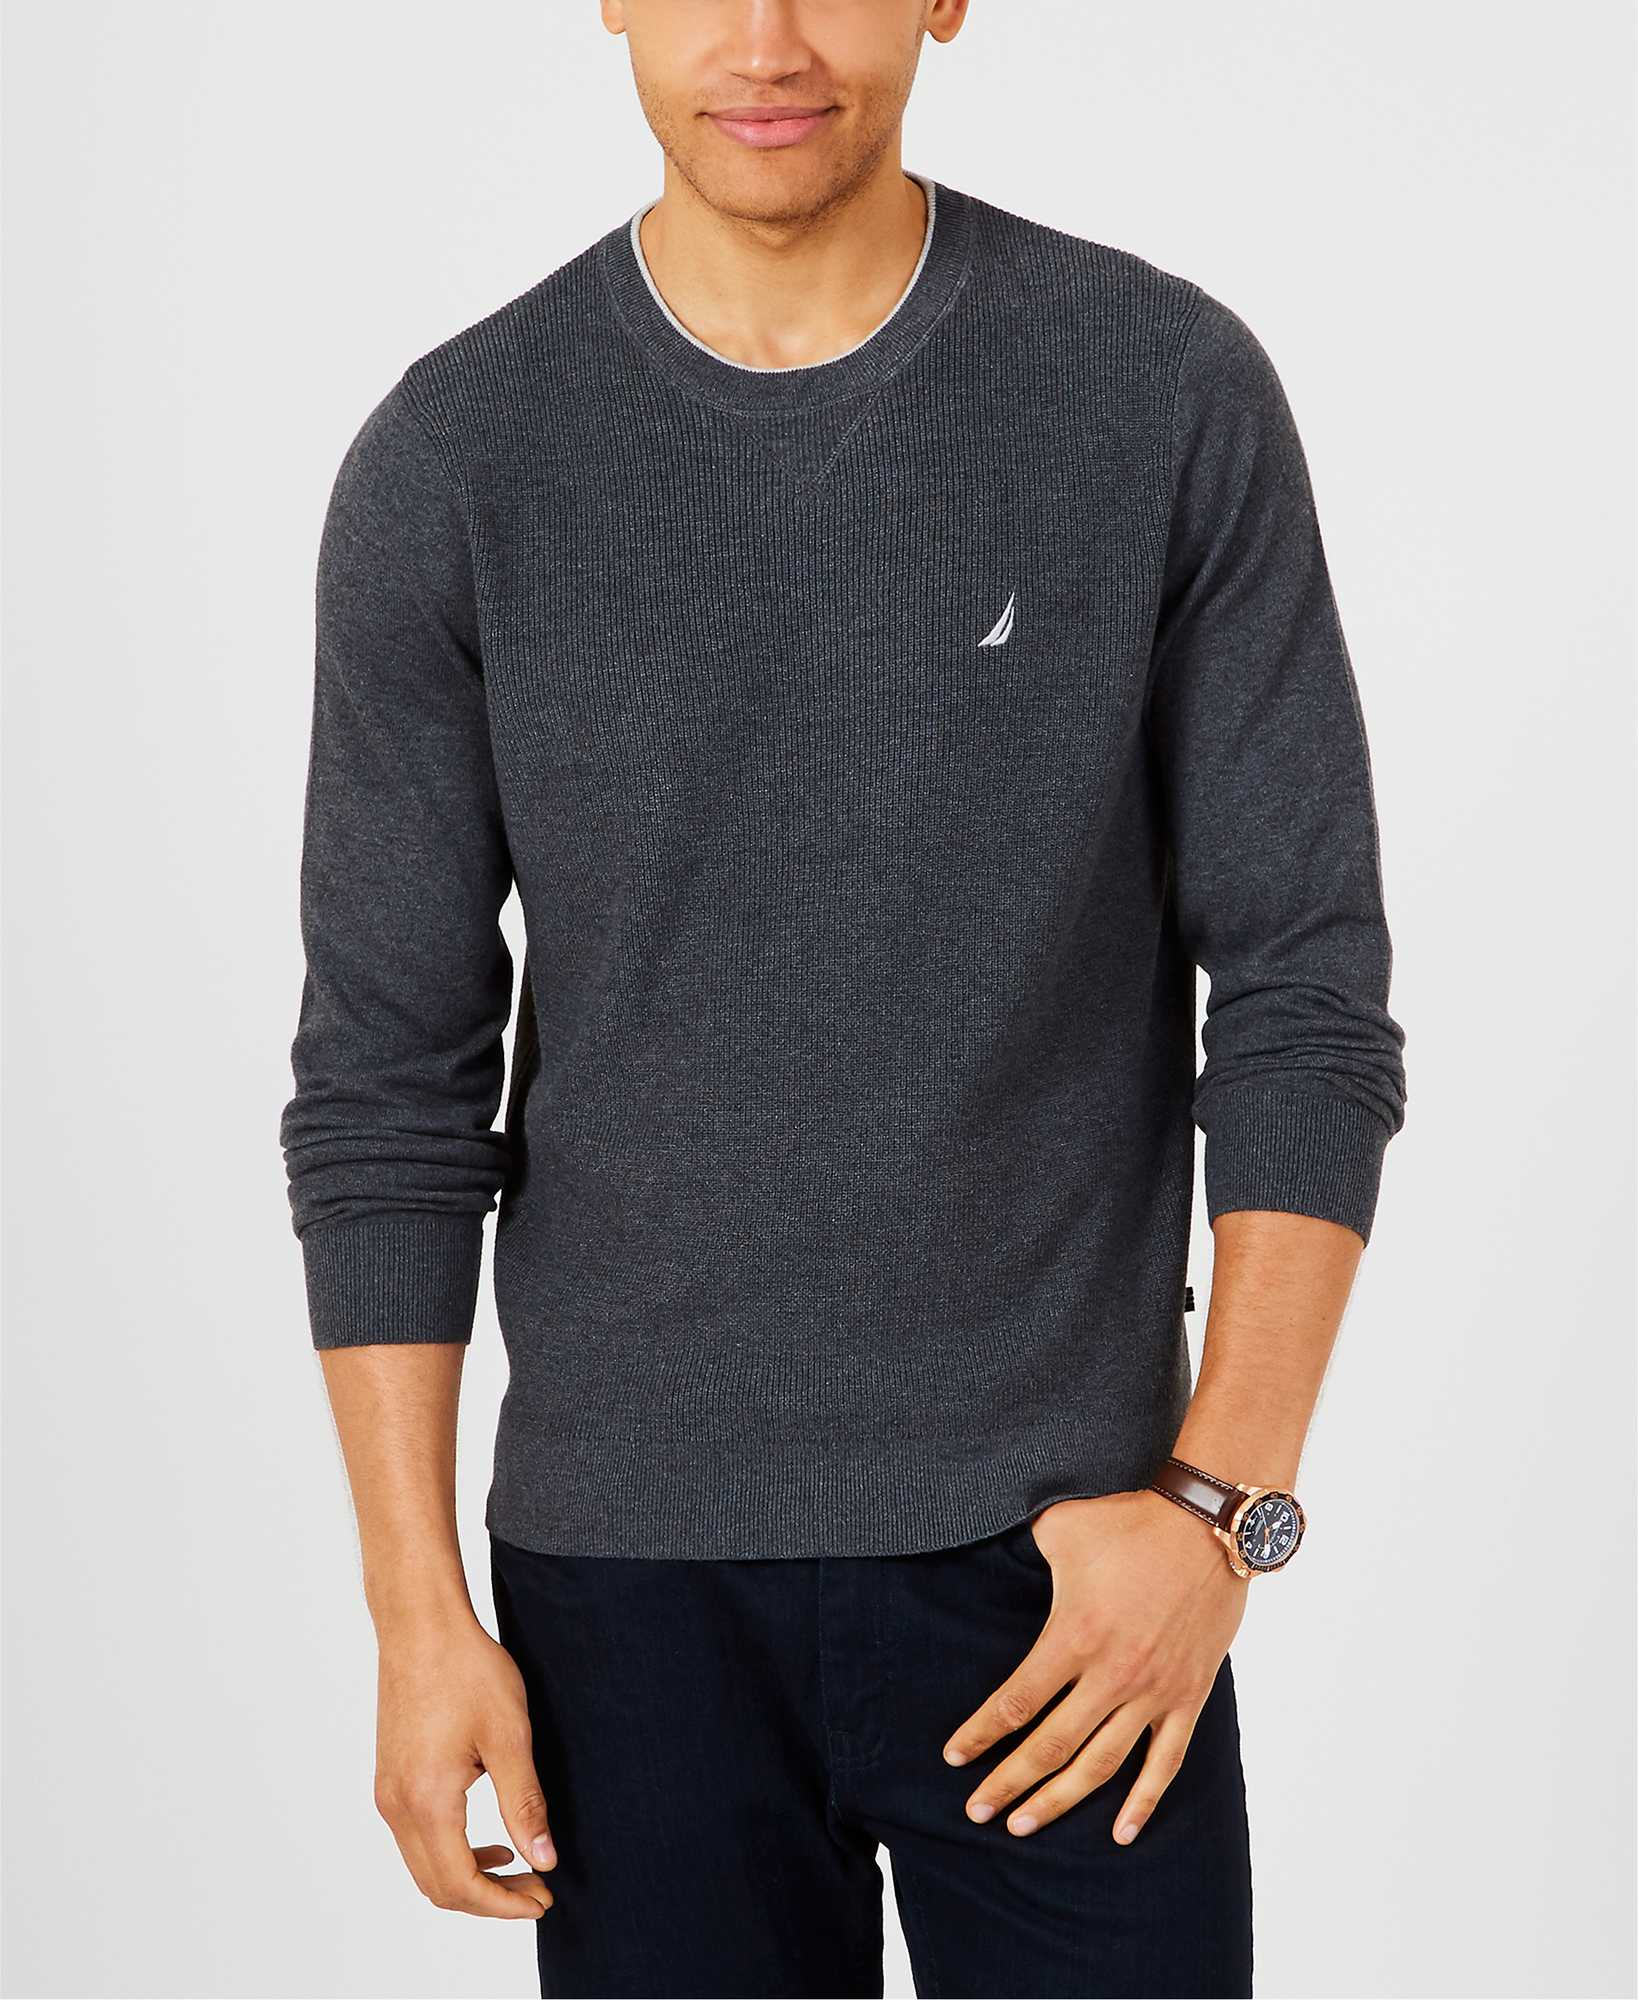 Nautica Sweater Men Knitted Cotton Chest Logo Color Dark Grey S83101.00E